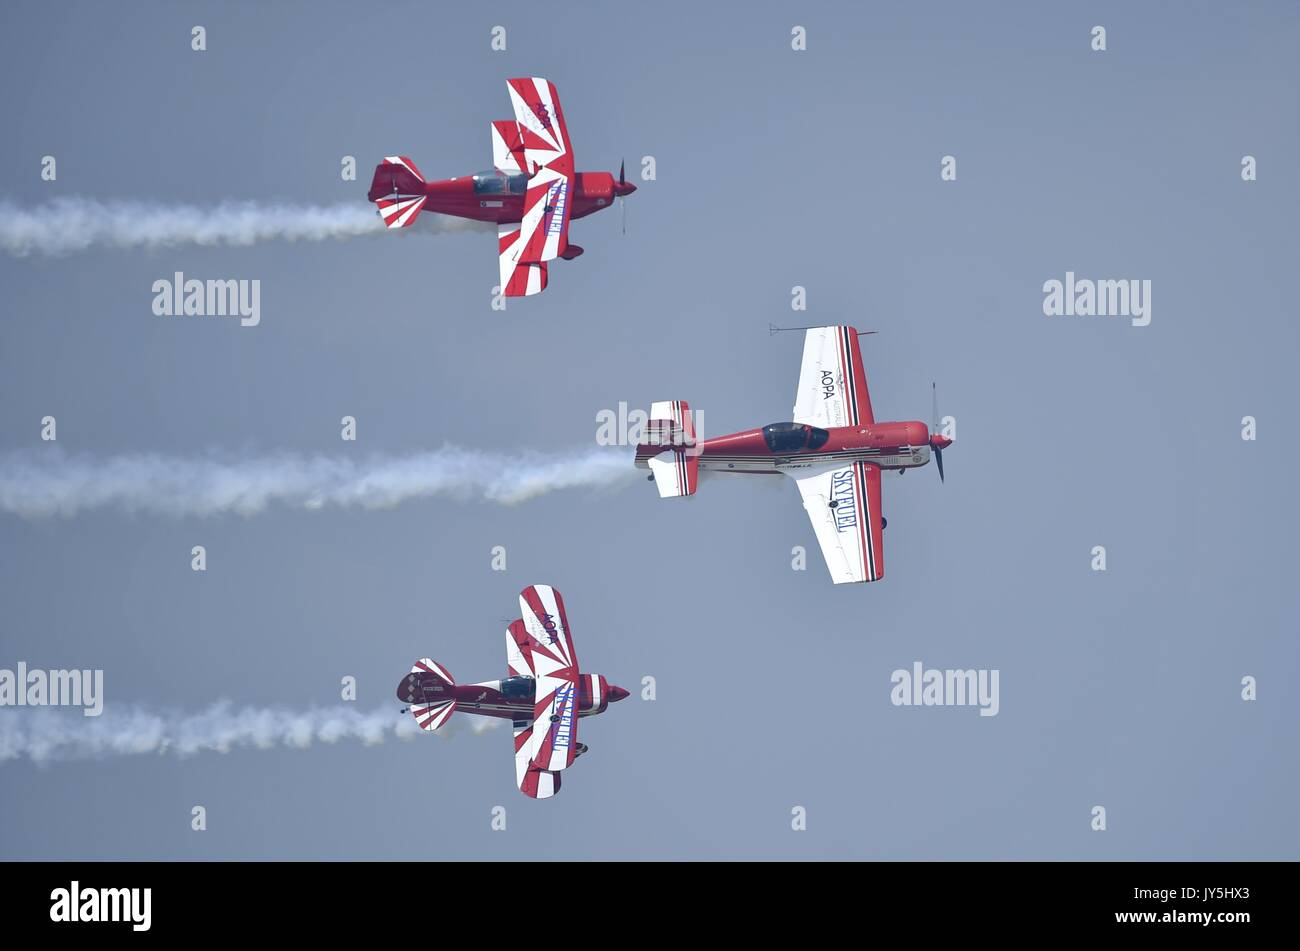 Shenyang. 18th Aug, 2017. Squadron members perform aerobatic flight during the 6th Faku Flight Conference in Shenyang, Stock Photo